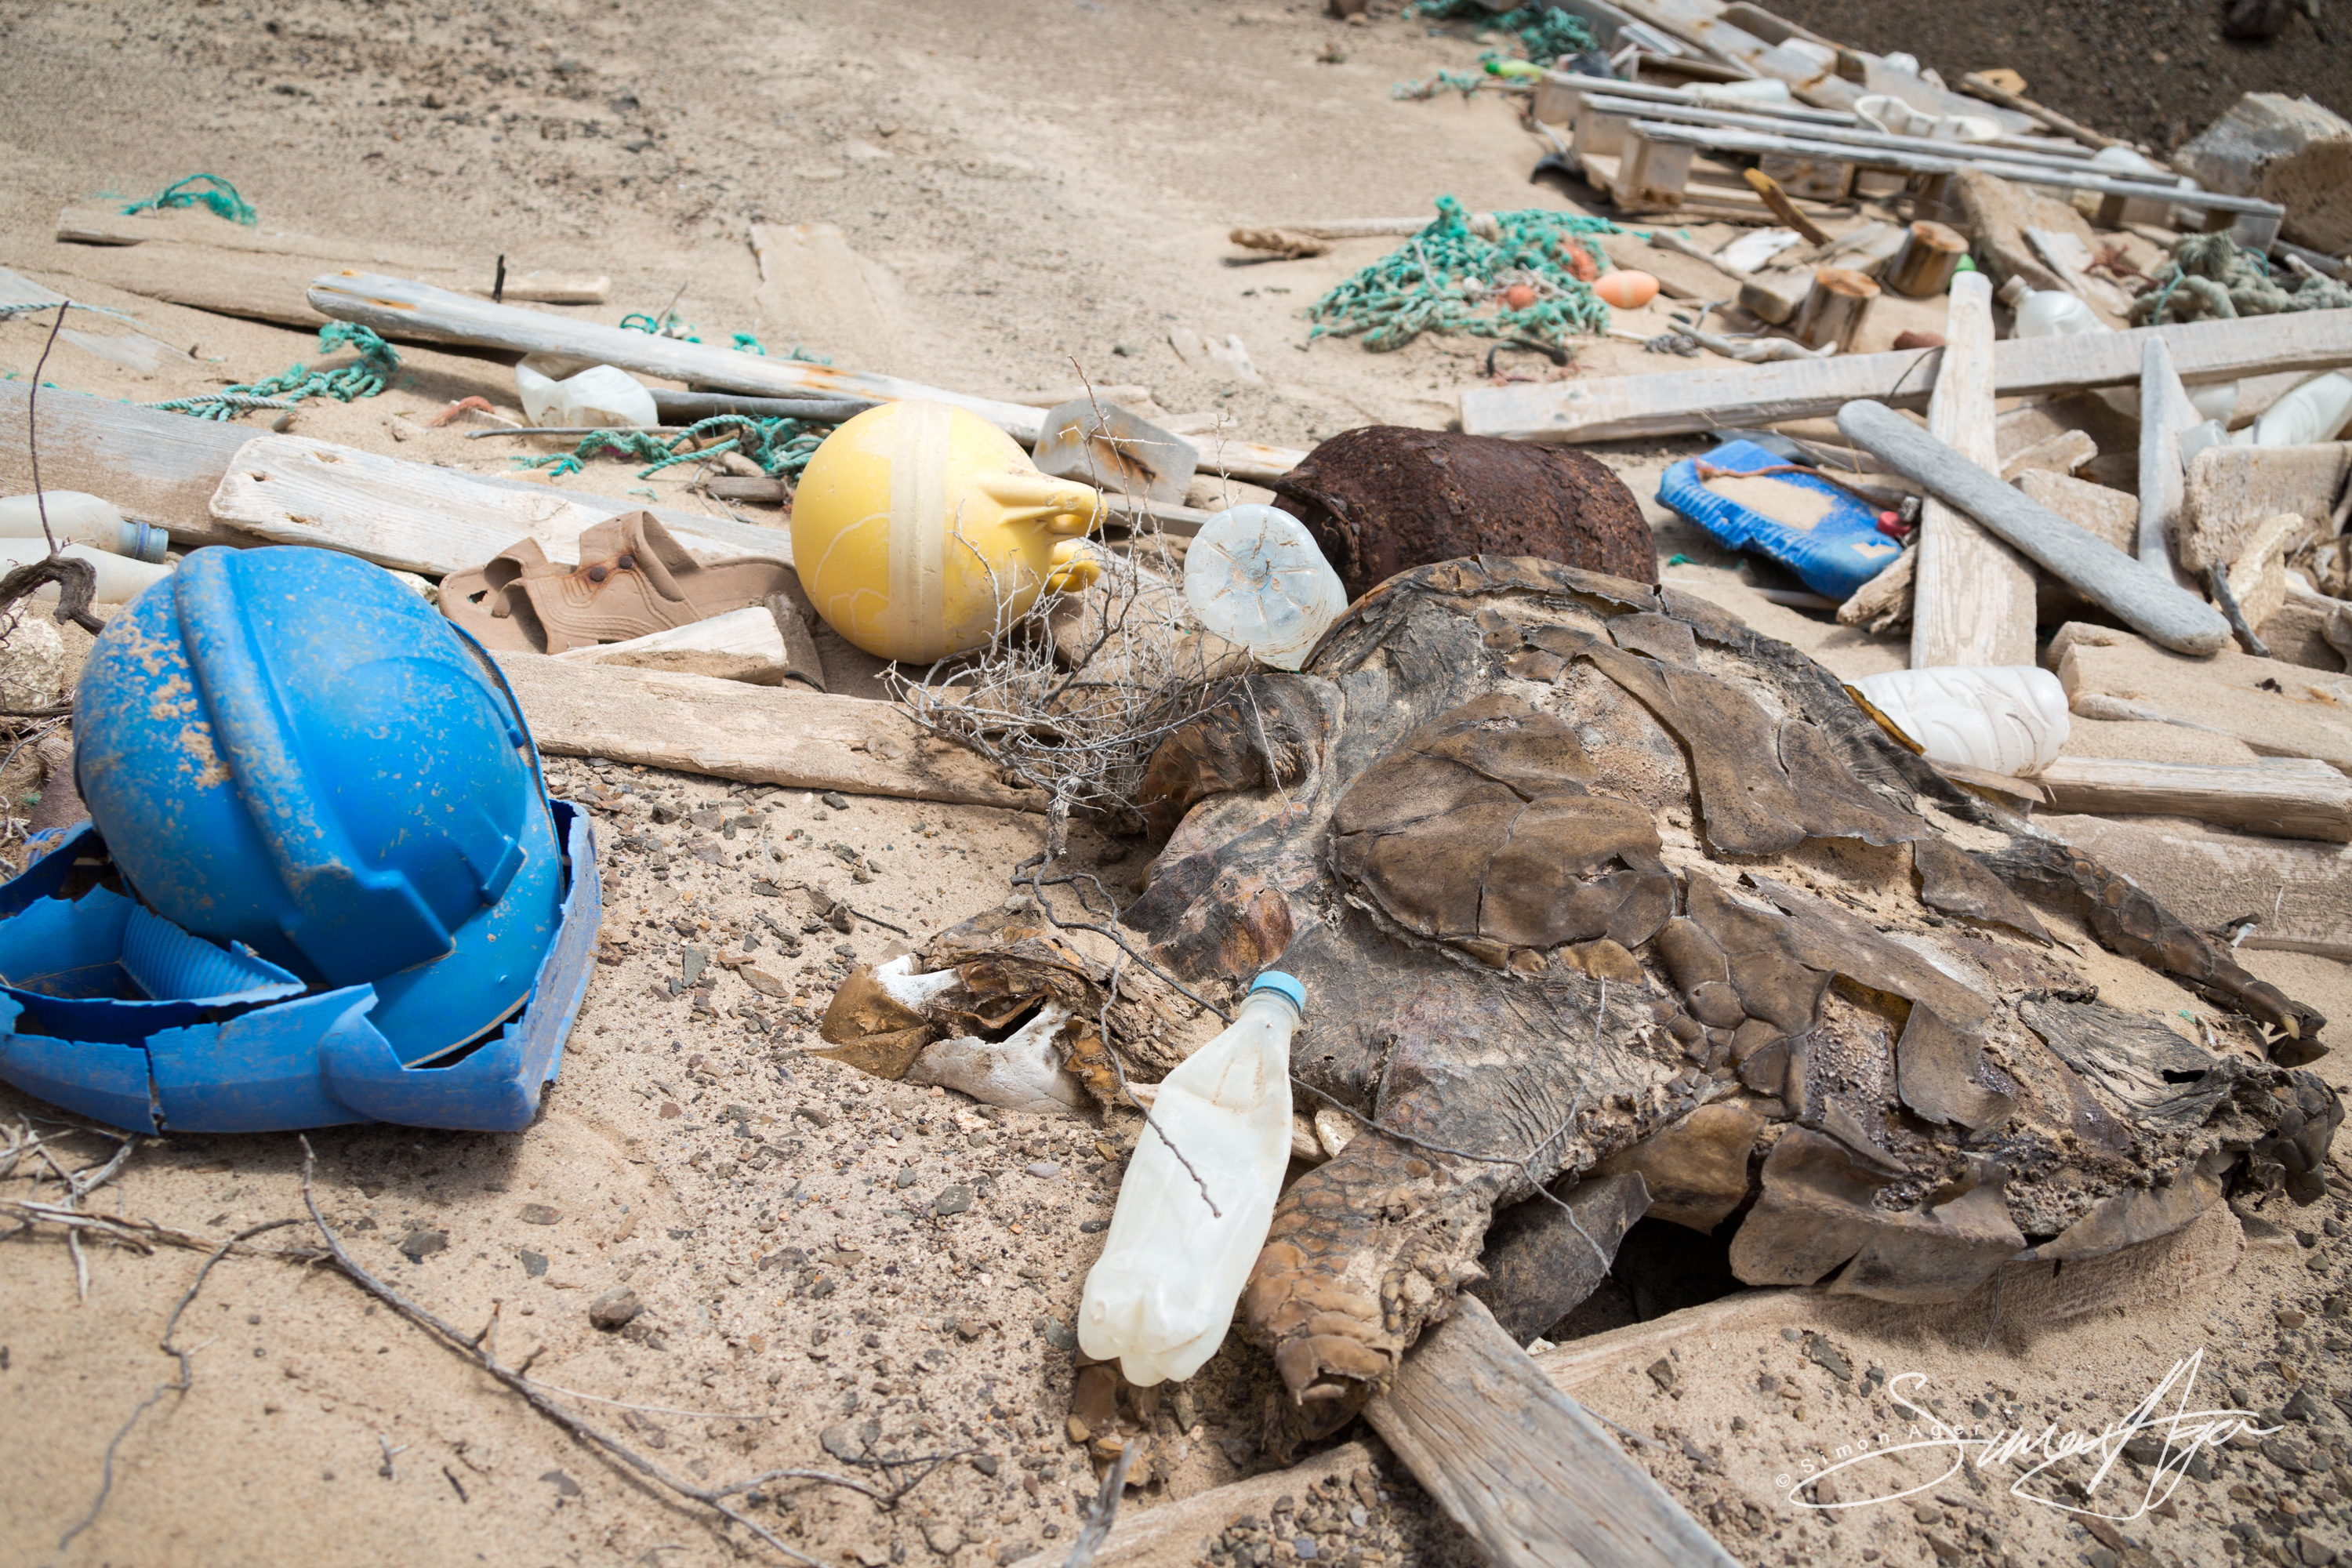 140822-SA-001-A-lost-turtle-surrounded-by-garbage-cooked-in-the-midday-sun -2479